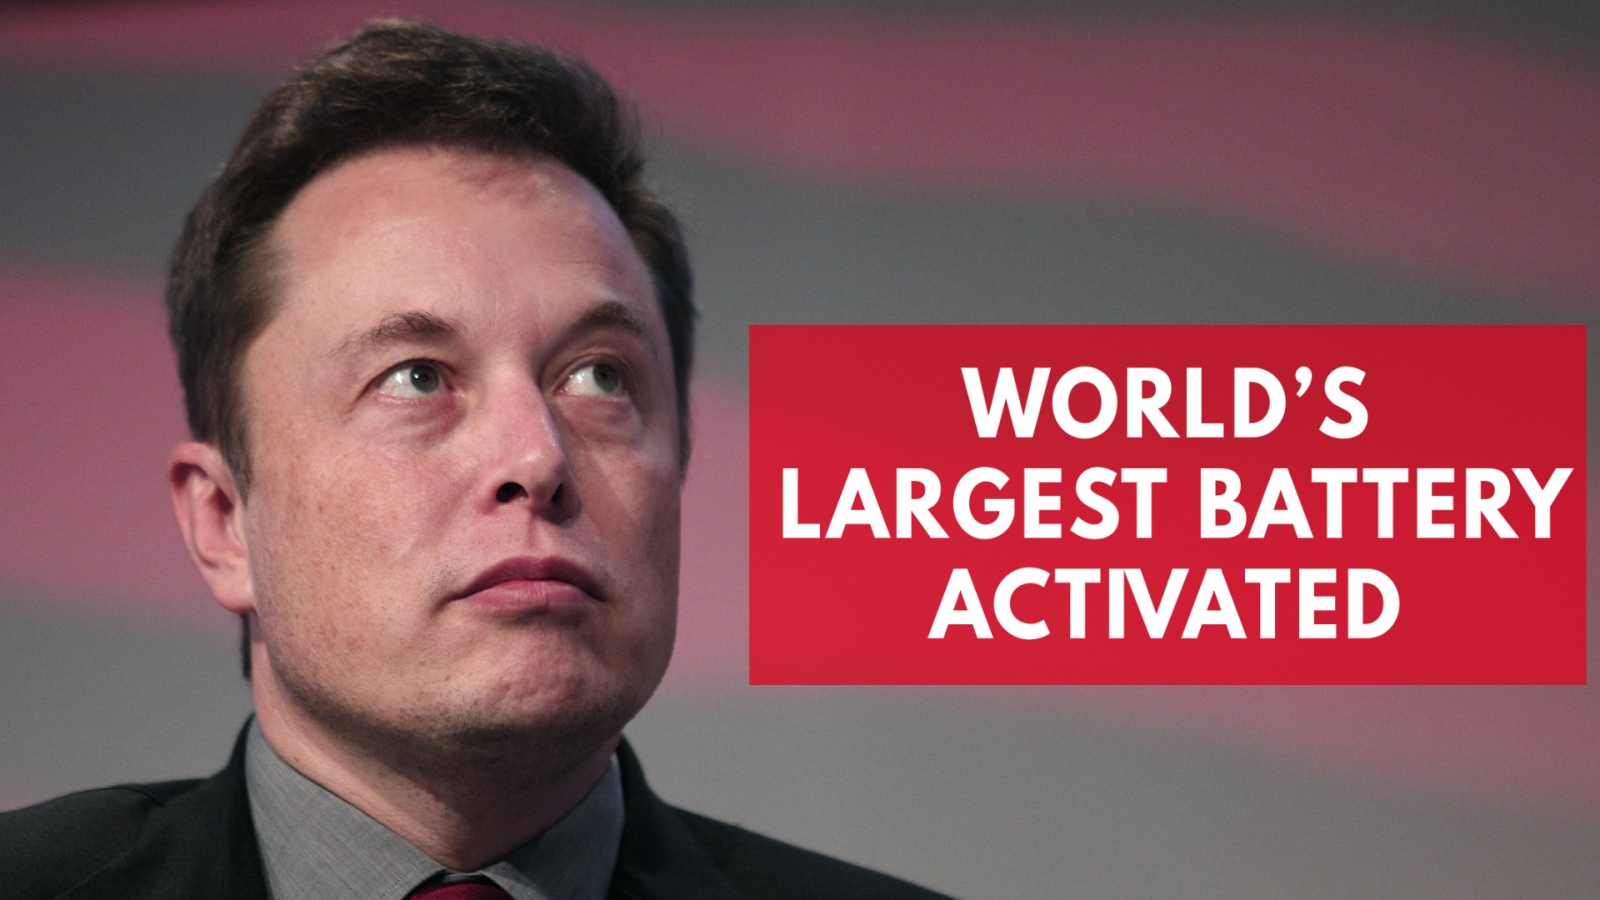 Elon Musk wins bet as Tesla mega-battery is built in just 60 days